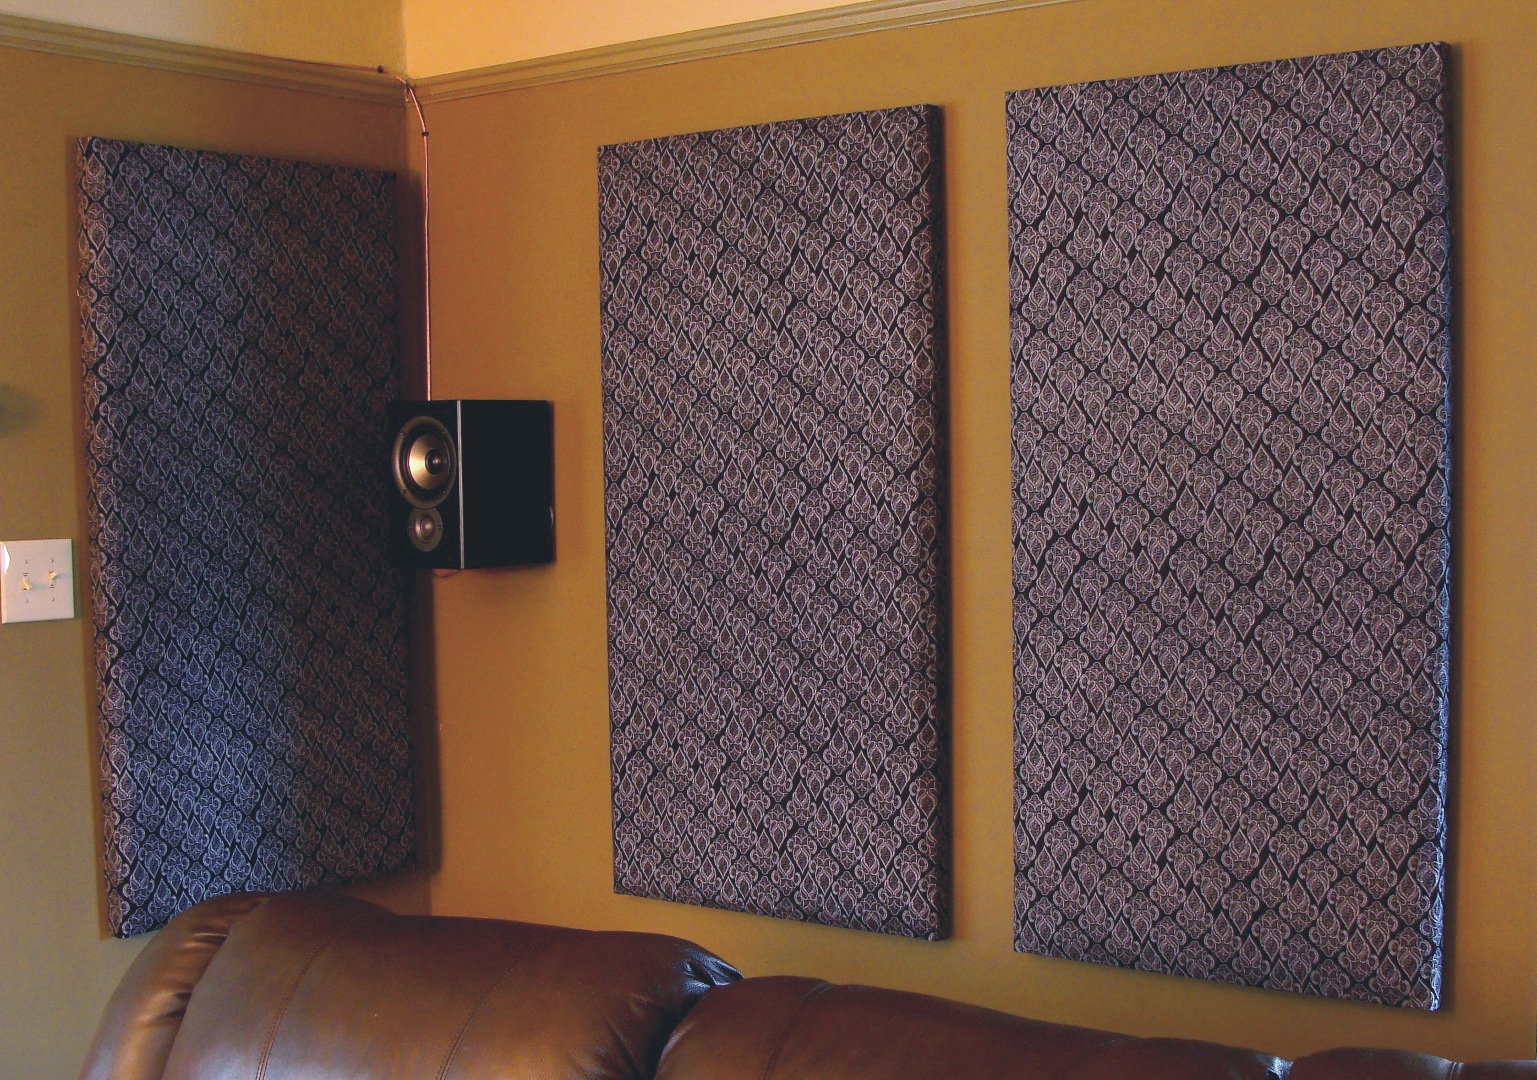 Enjoyable How To Build Your Own Acoustic Panels Diy Largest Home Design Picture Inspirations Pitcheantrous